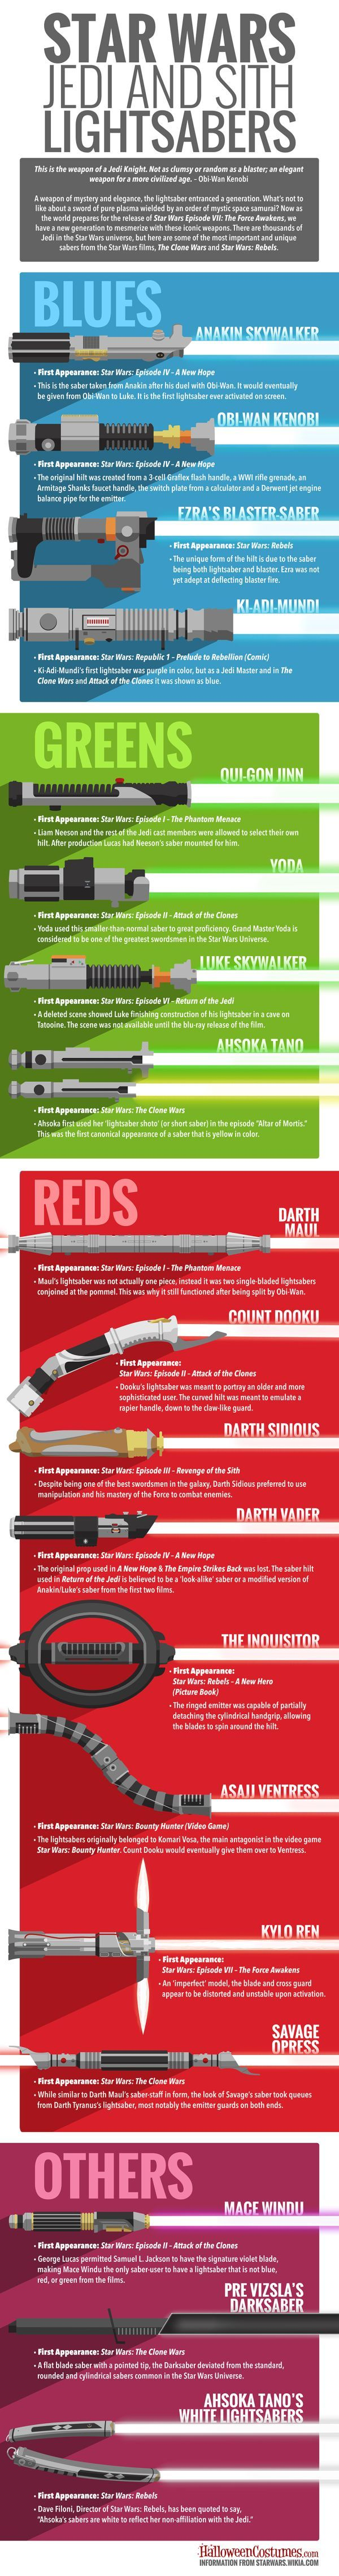 A great infographic from the folks over at Halloweencostumes.com listing some of the most important, most unique, and most recognizable lightsabers from the